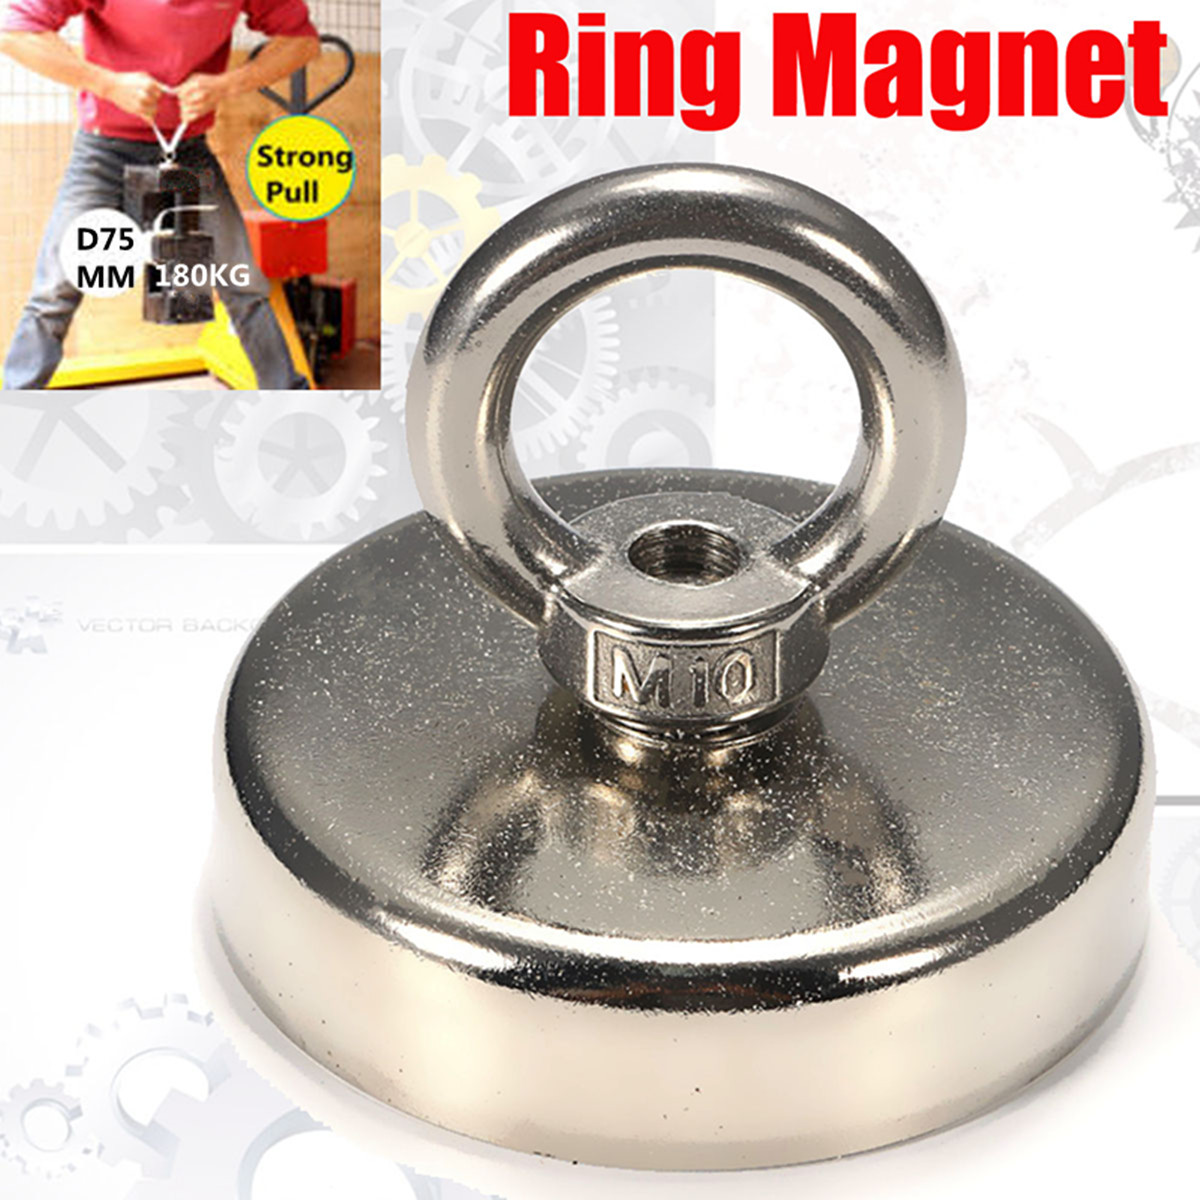 75mmx63mm 162kg Fishing Magnet with Countersunk Hole and Eyebolt Round Neodymium Recovery Magnet Metal Detector suleve 75x80mm neodymium recovery magnet metal detector eyebolt circular ring magnet 165kg